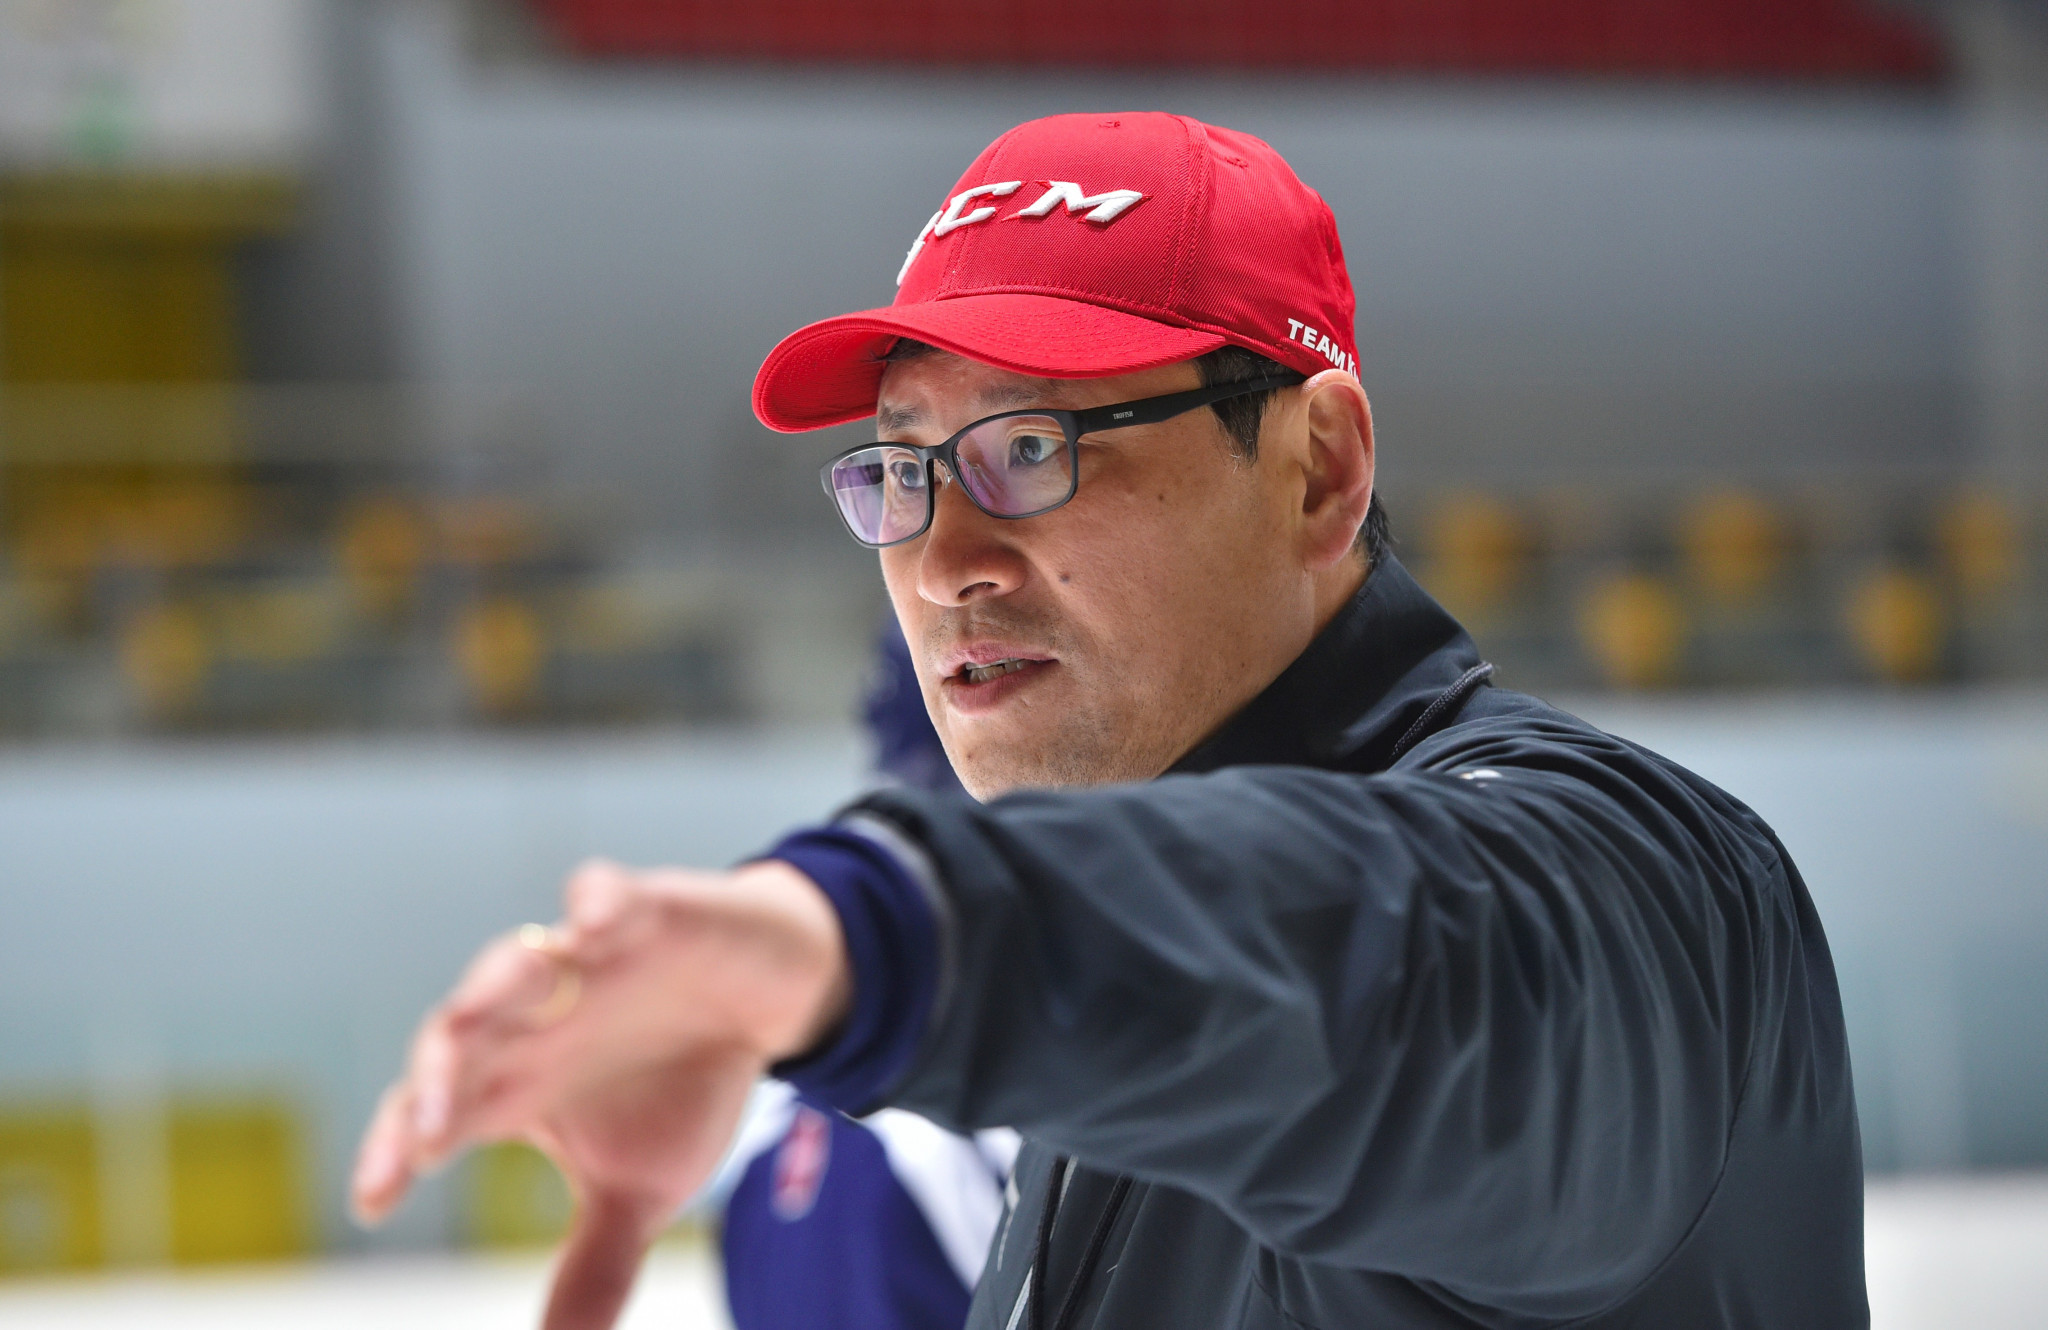 South Korea have extended the contract of coach Jim Paek, a former NHL star, first appointed in 2014 ©Getty Images